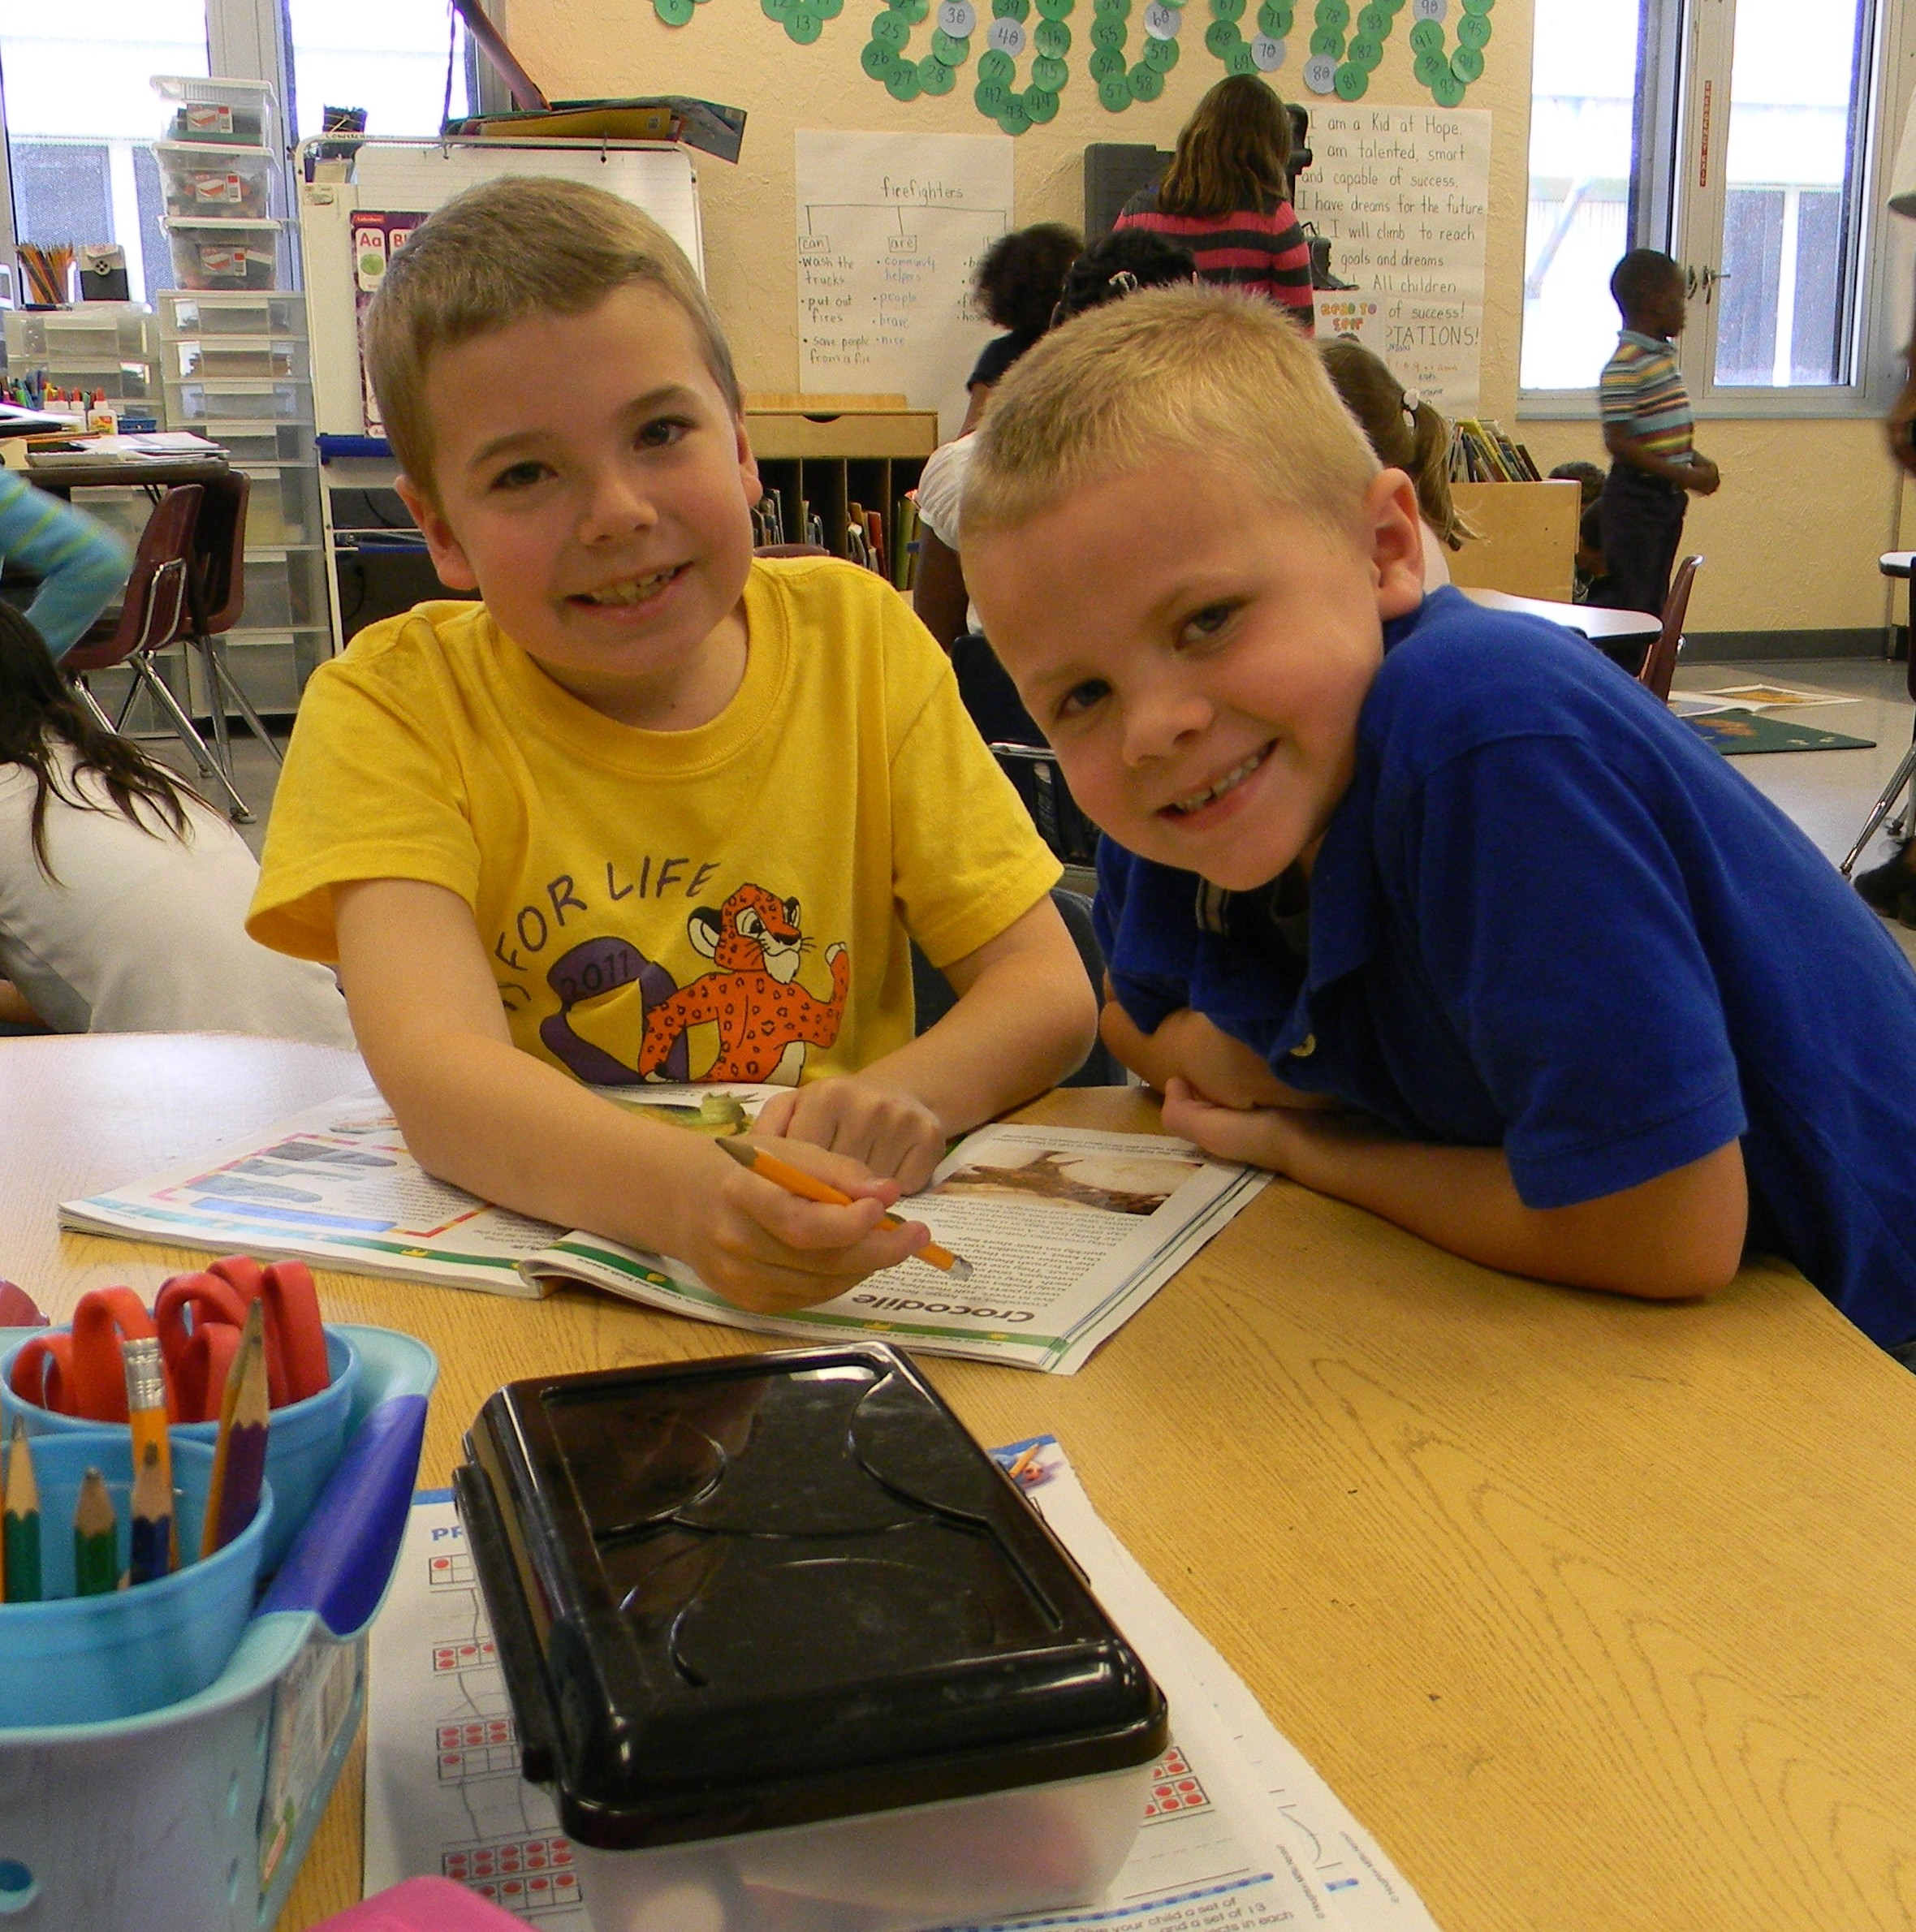 Reading buddies create learning partnerships